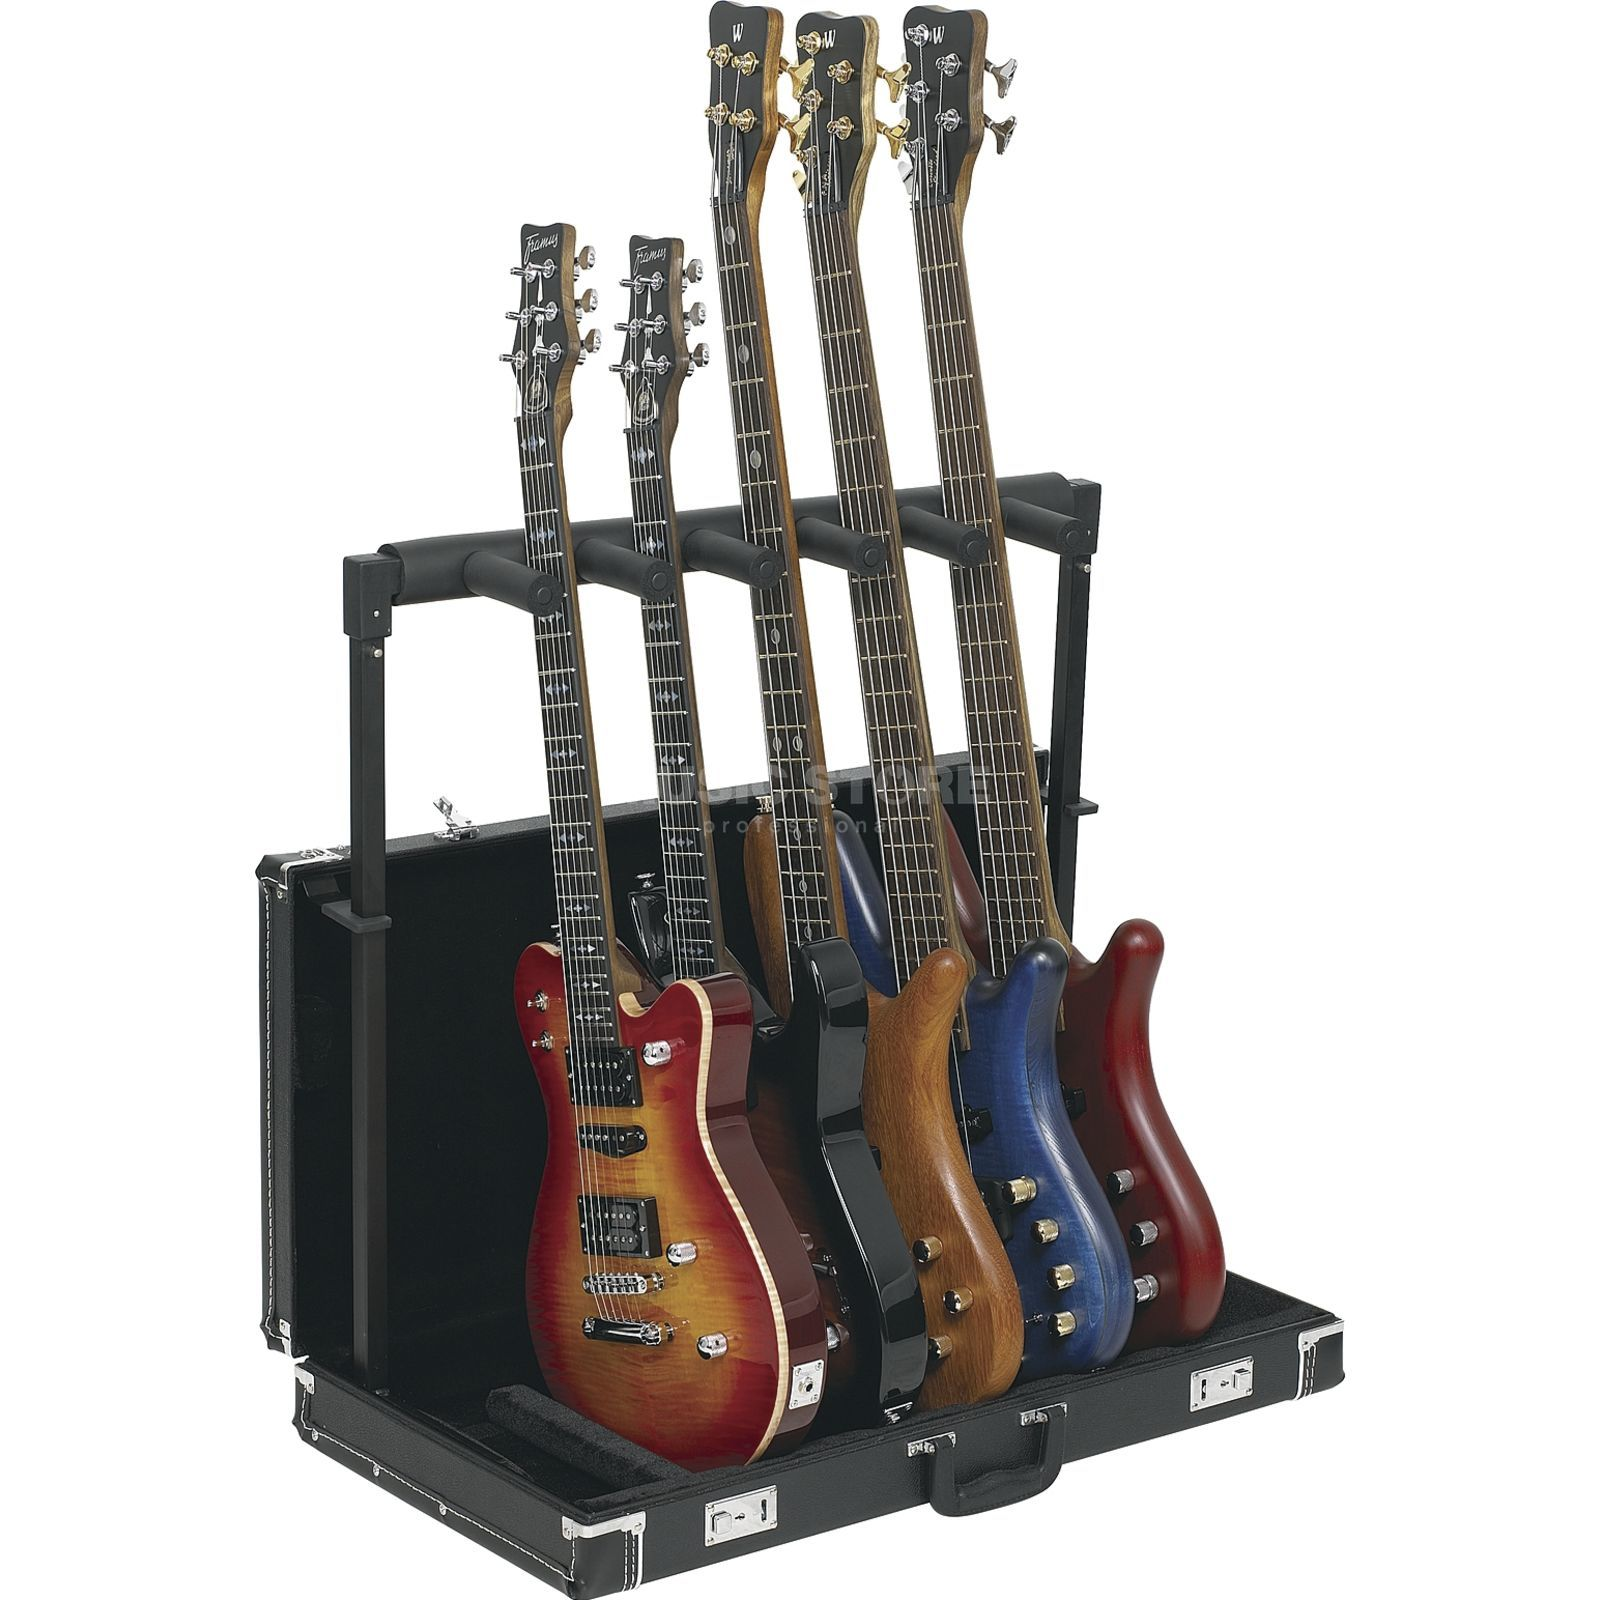 Rockstand 5-er Multiple Guitar Stand Woodcase RS 20850 B/2 Produktbild